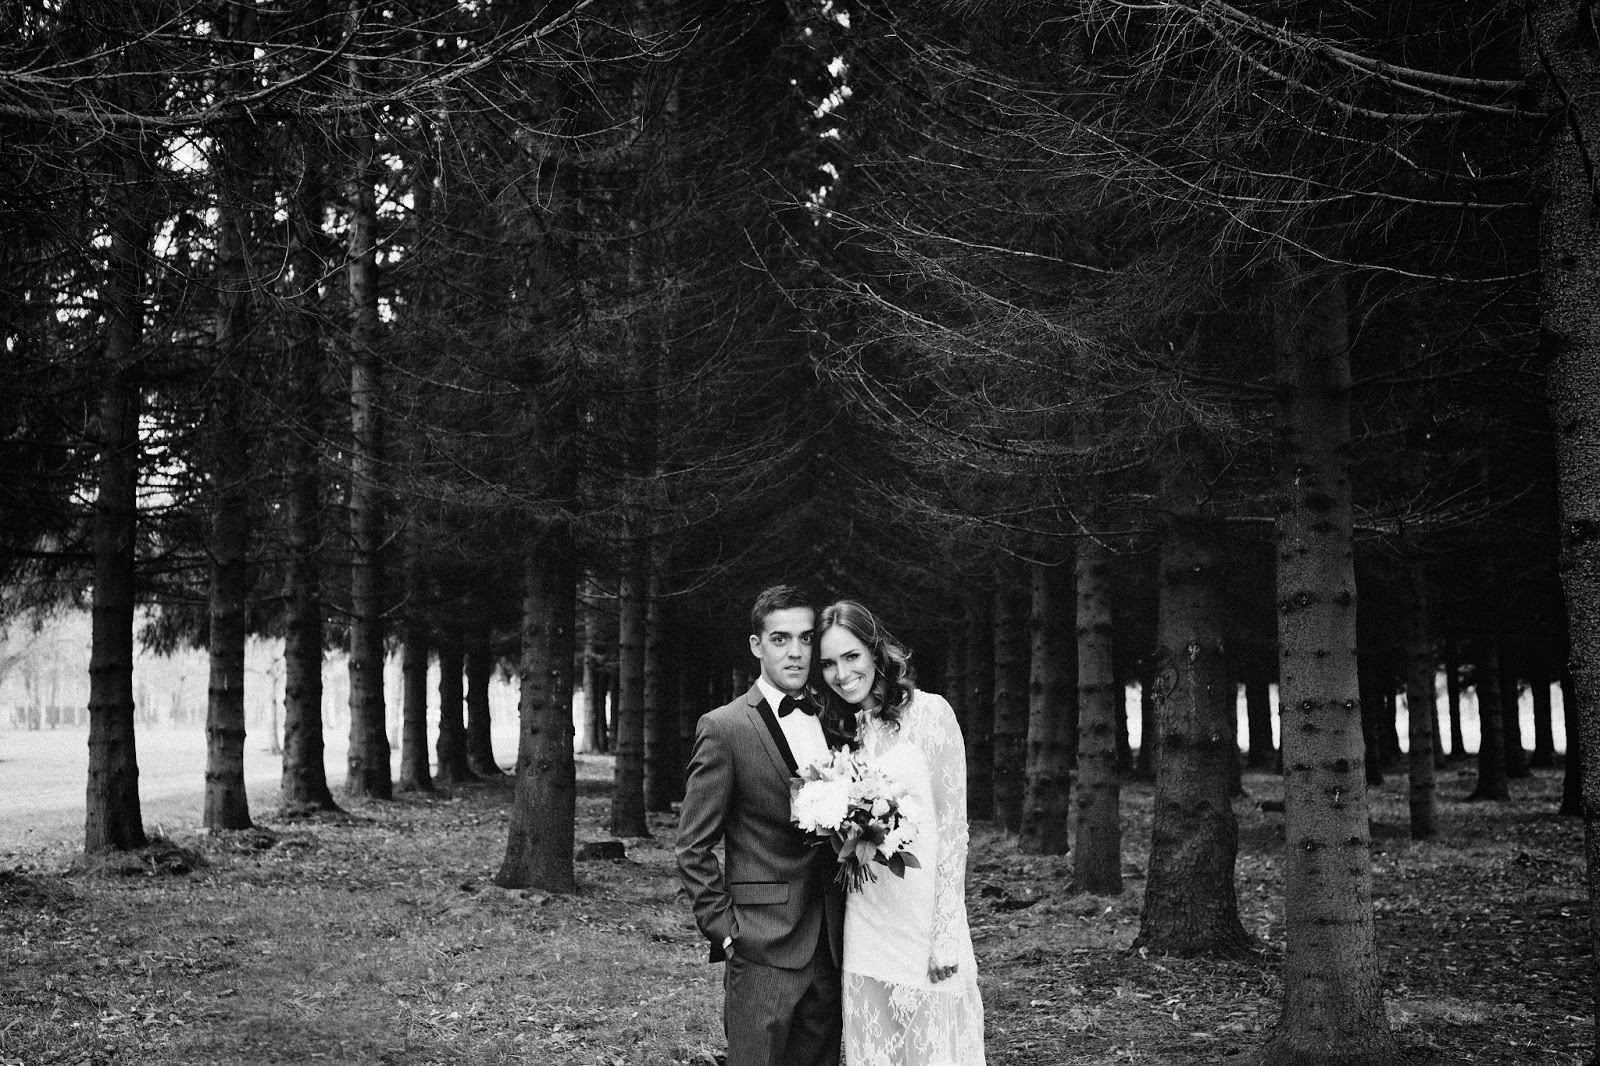 wedding-photo-in-woods-black-white kristjaana ja richard mere pulm